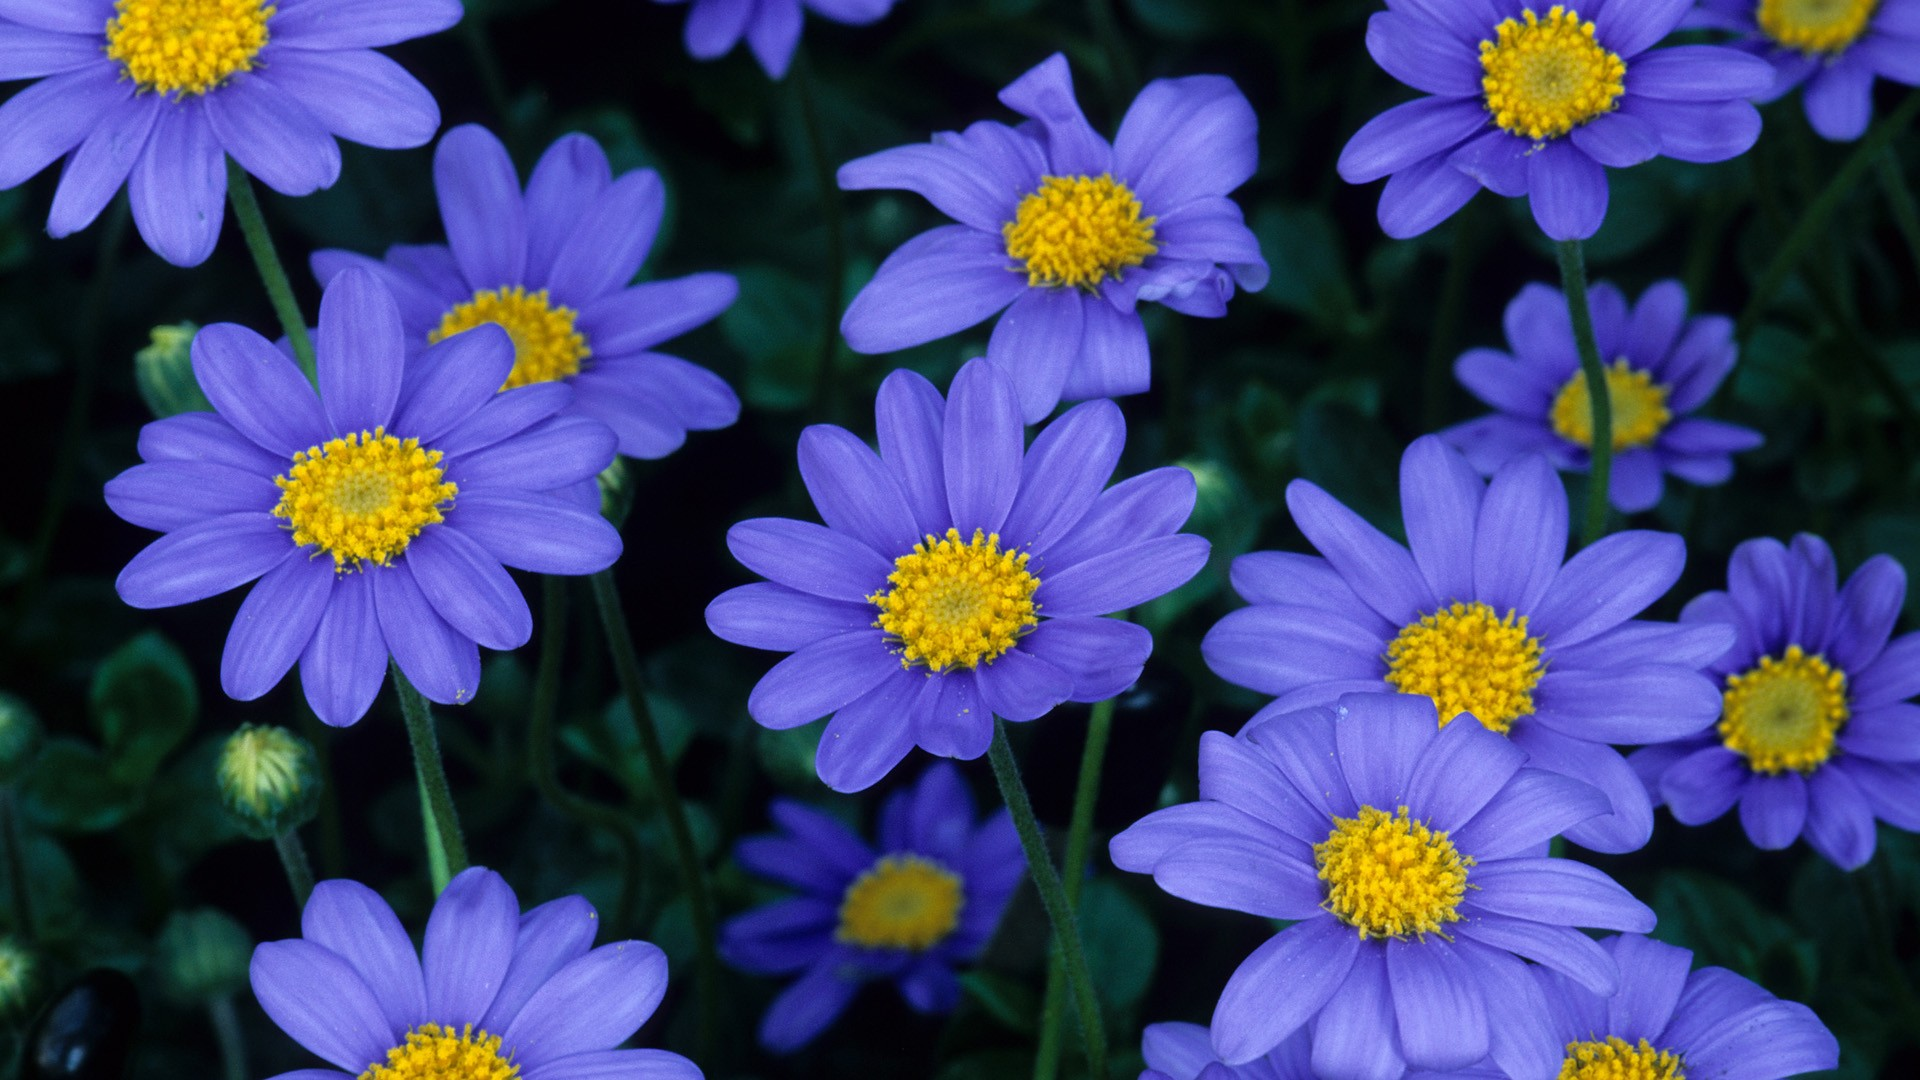 Blue Flowers Wallpapers High Quality Free